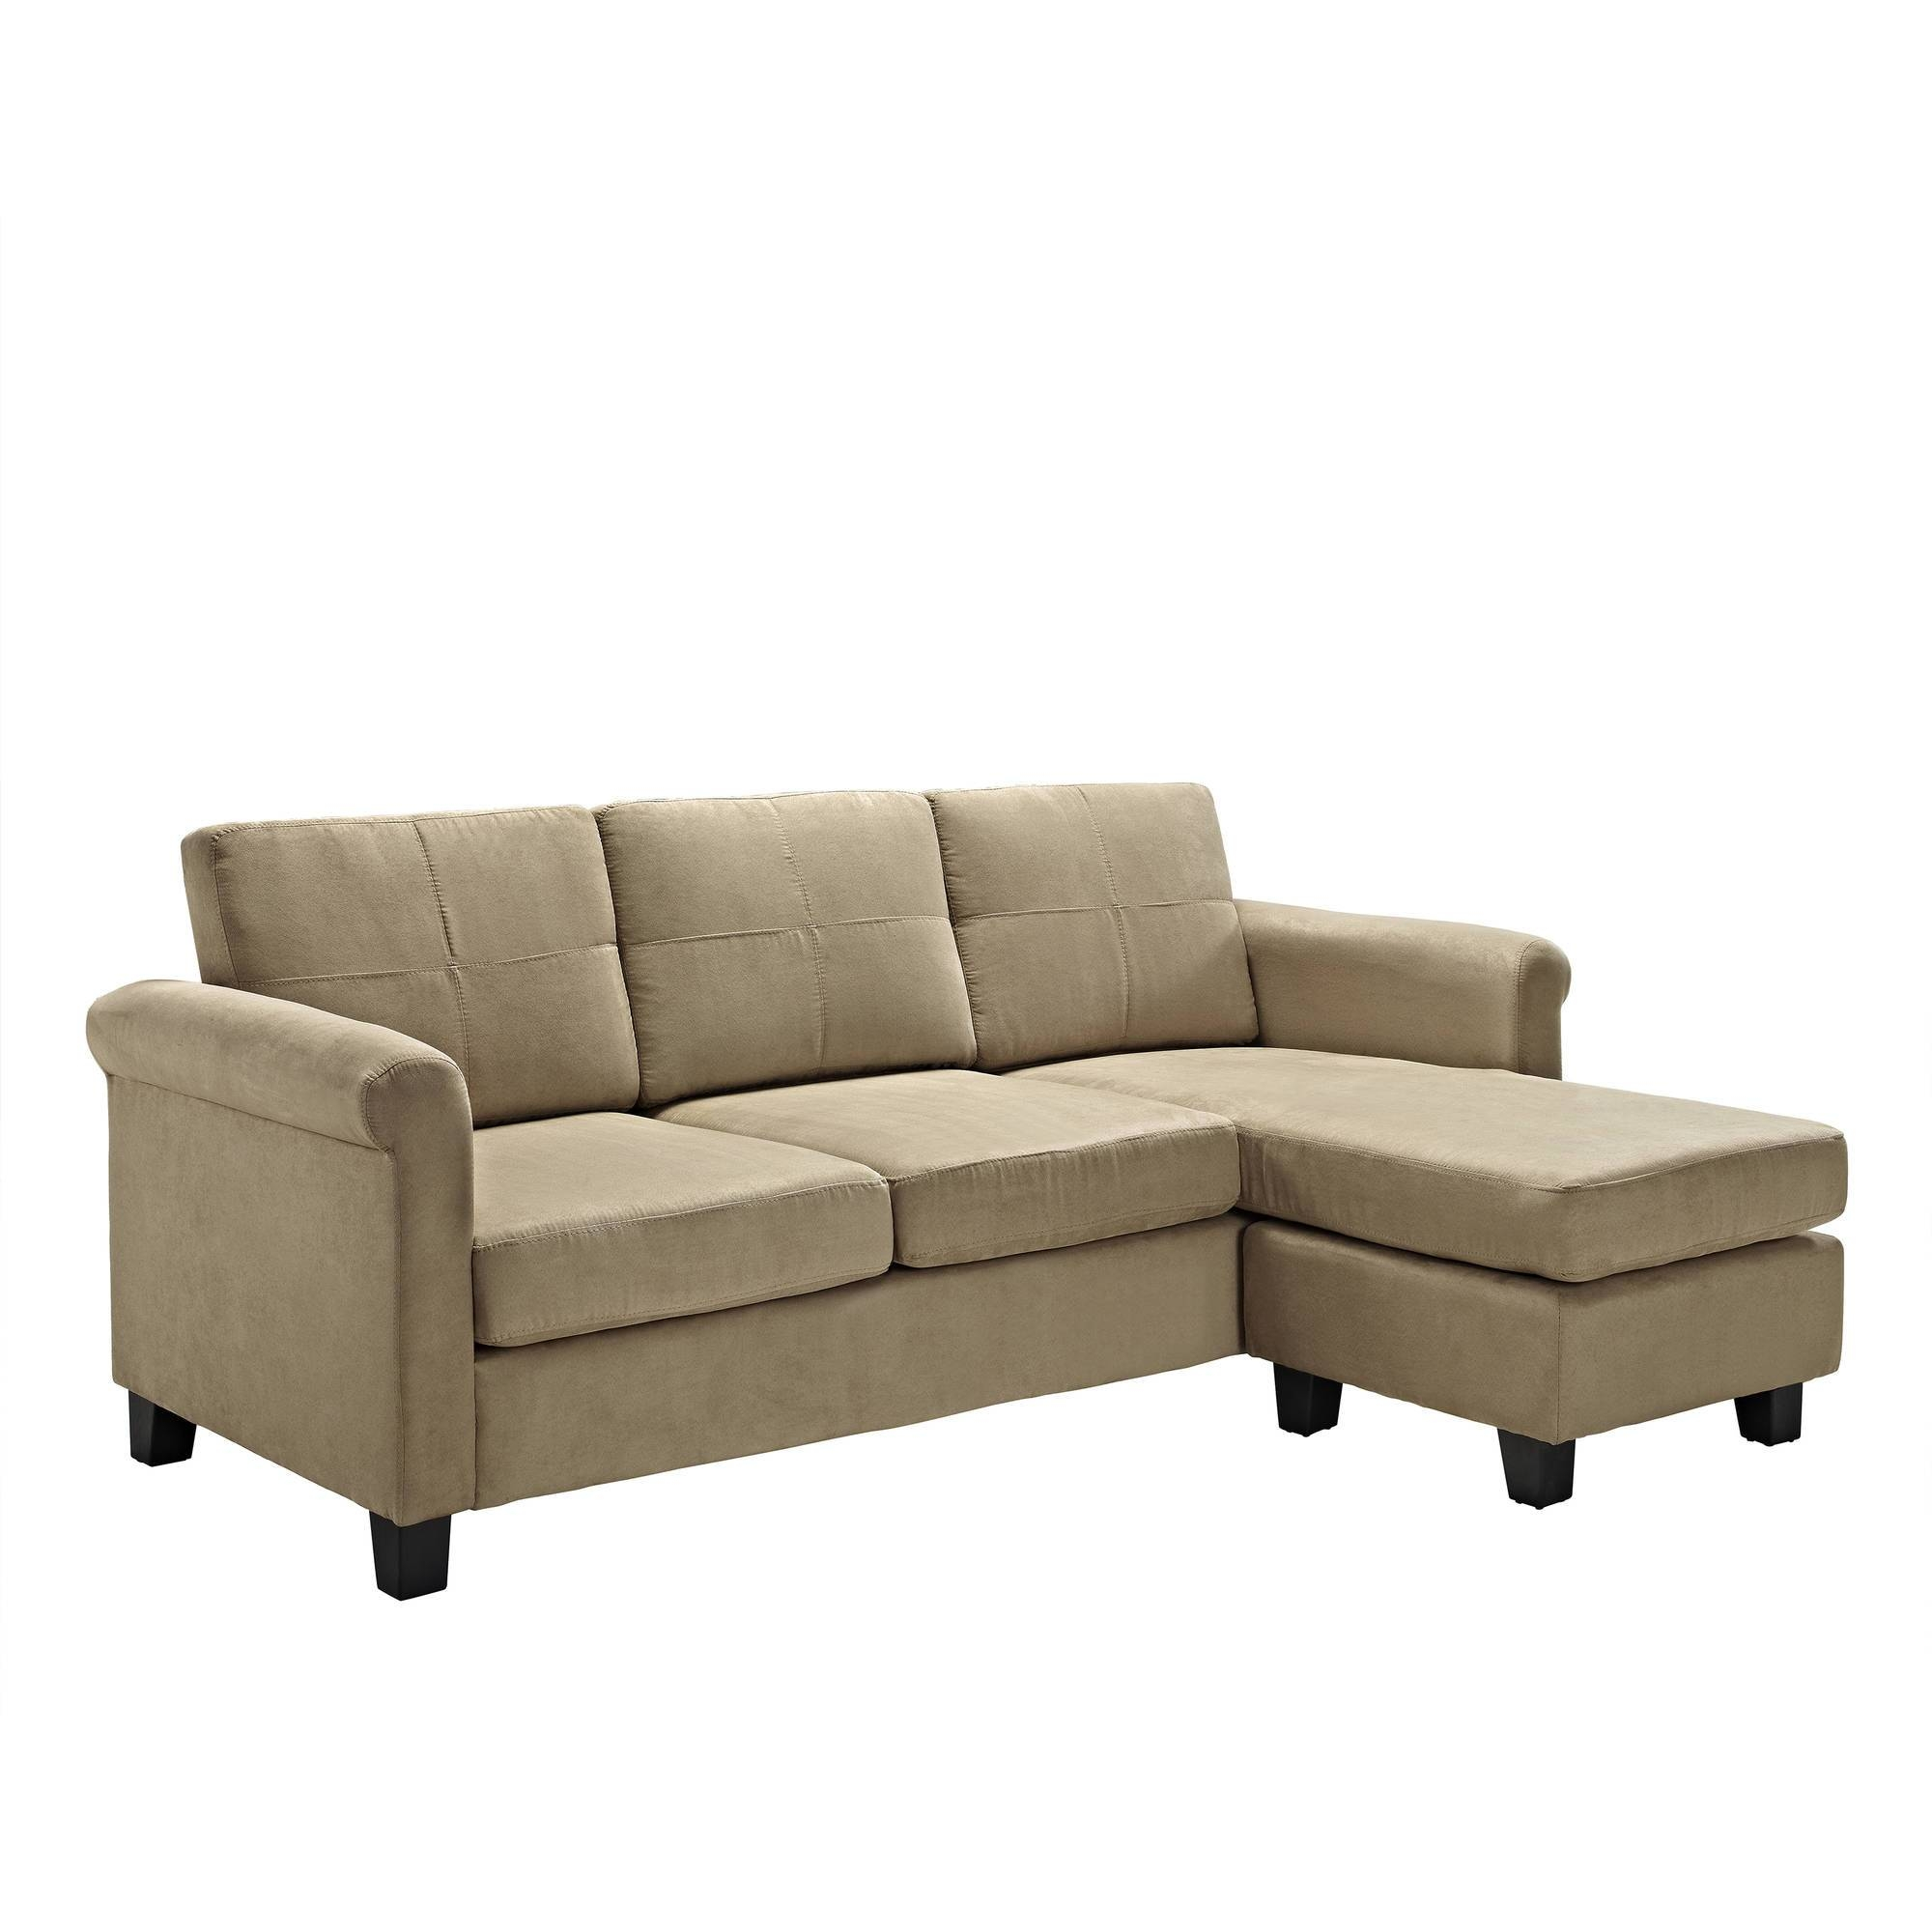 Dorel Living Small Spaces Configurable Sectional Sofa, Multiple inside Mini Sectional Sofas (Image 7 of 30)